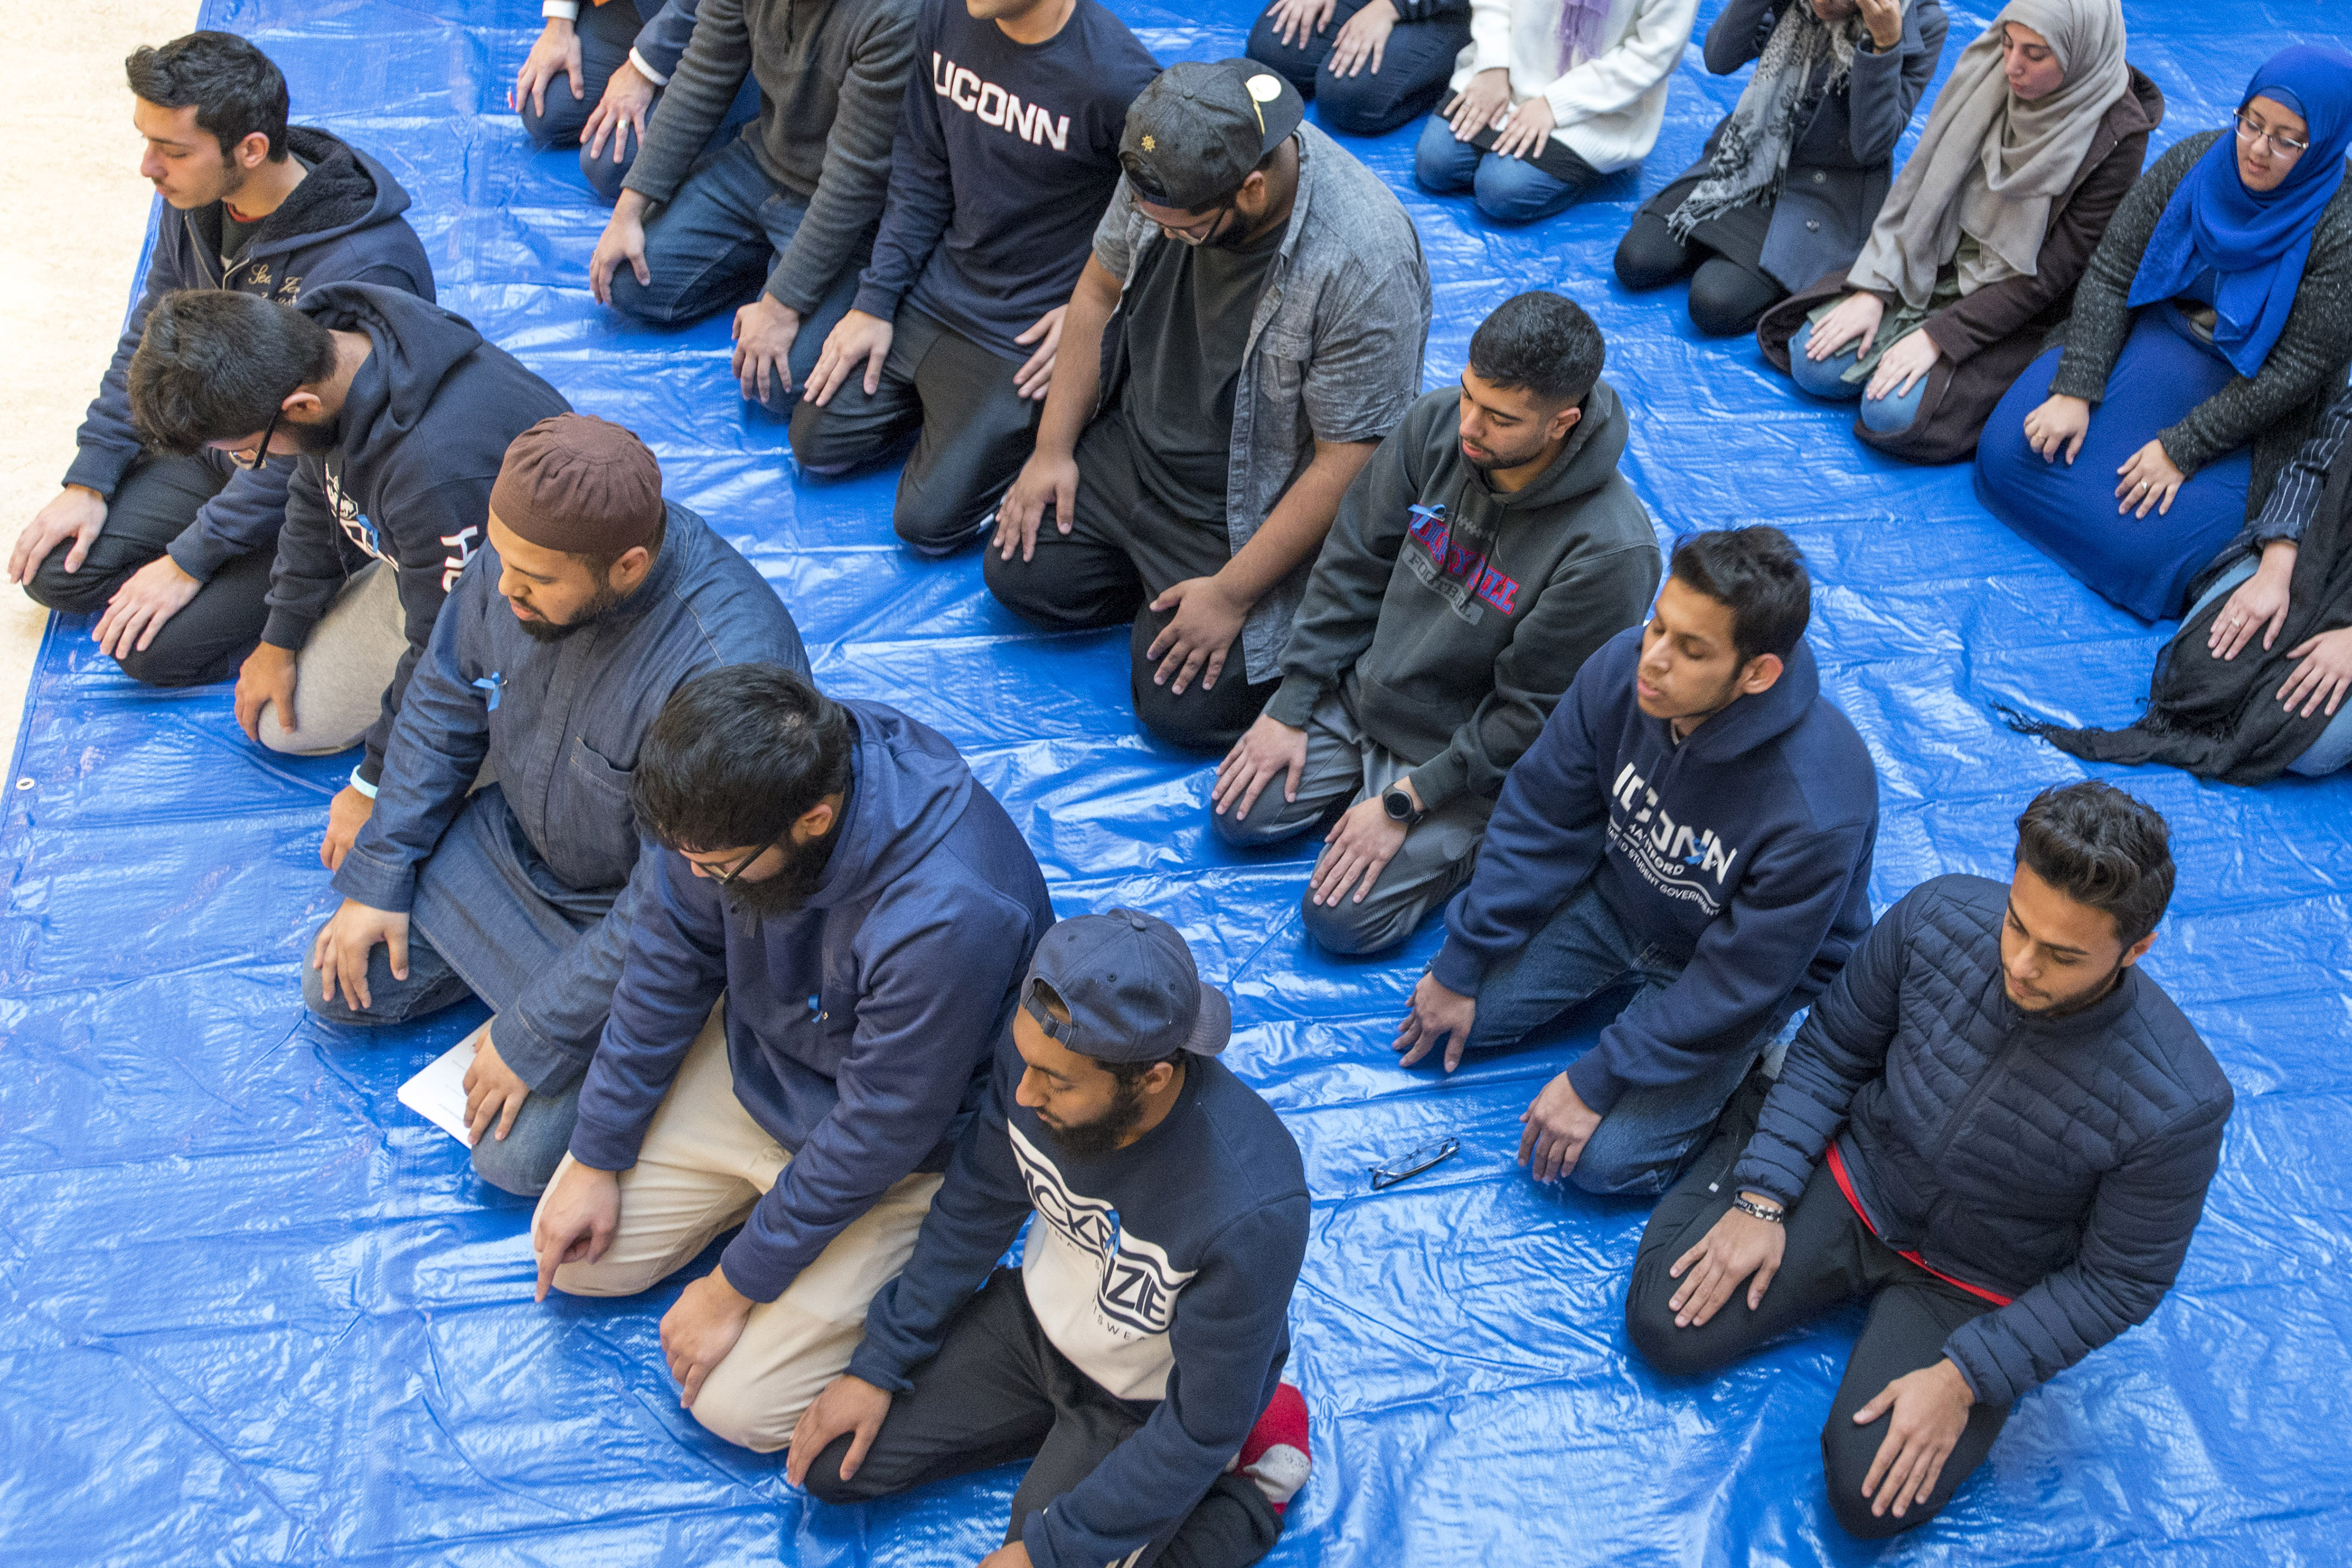 A Muslim prayer service at the Hartford Public Library before a Metanoia event at the Hartford Campus in November 2017. (Sean Flynn/UConn File Photo)